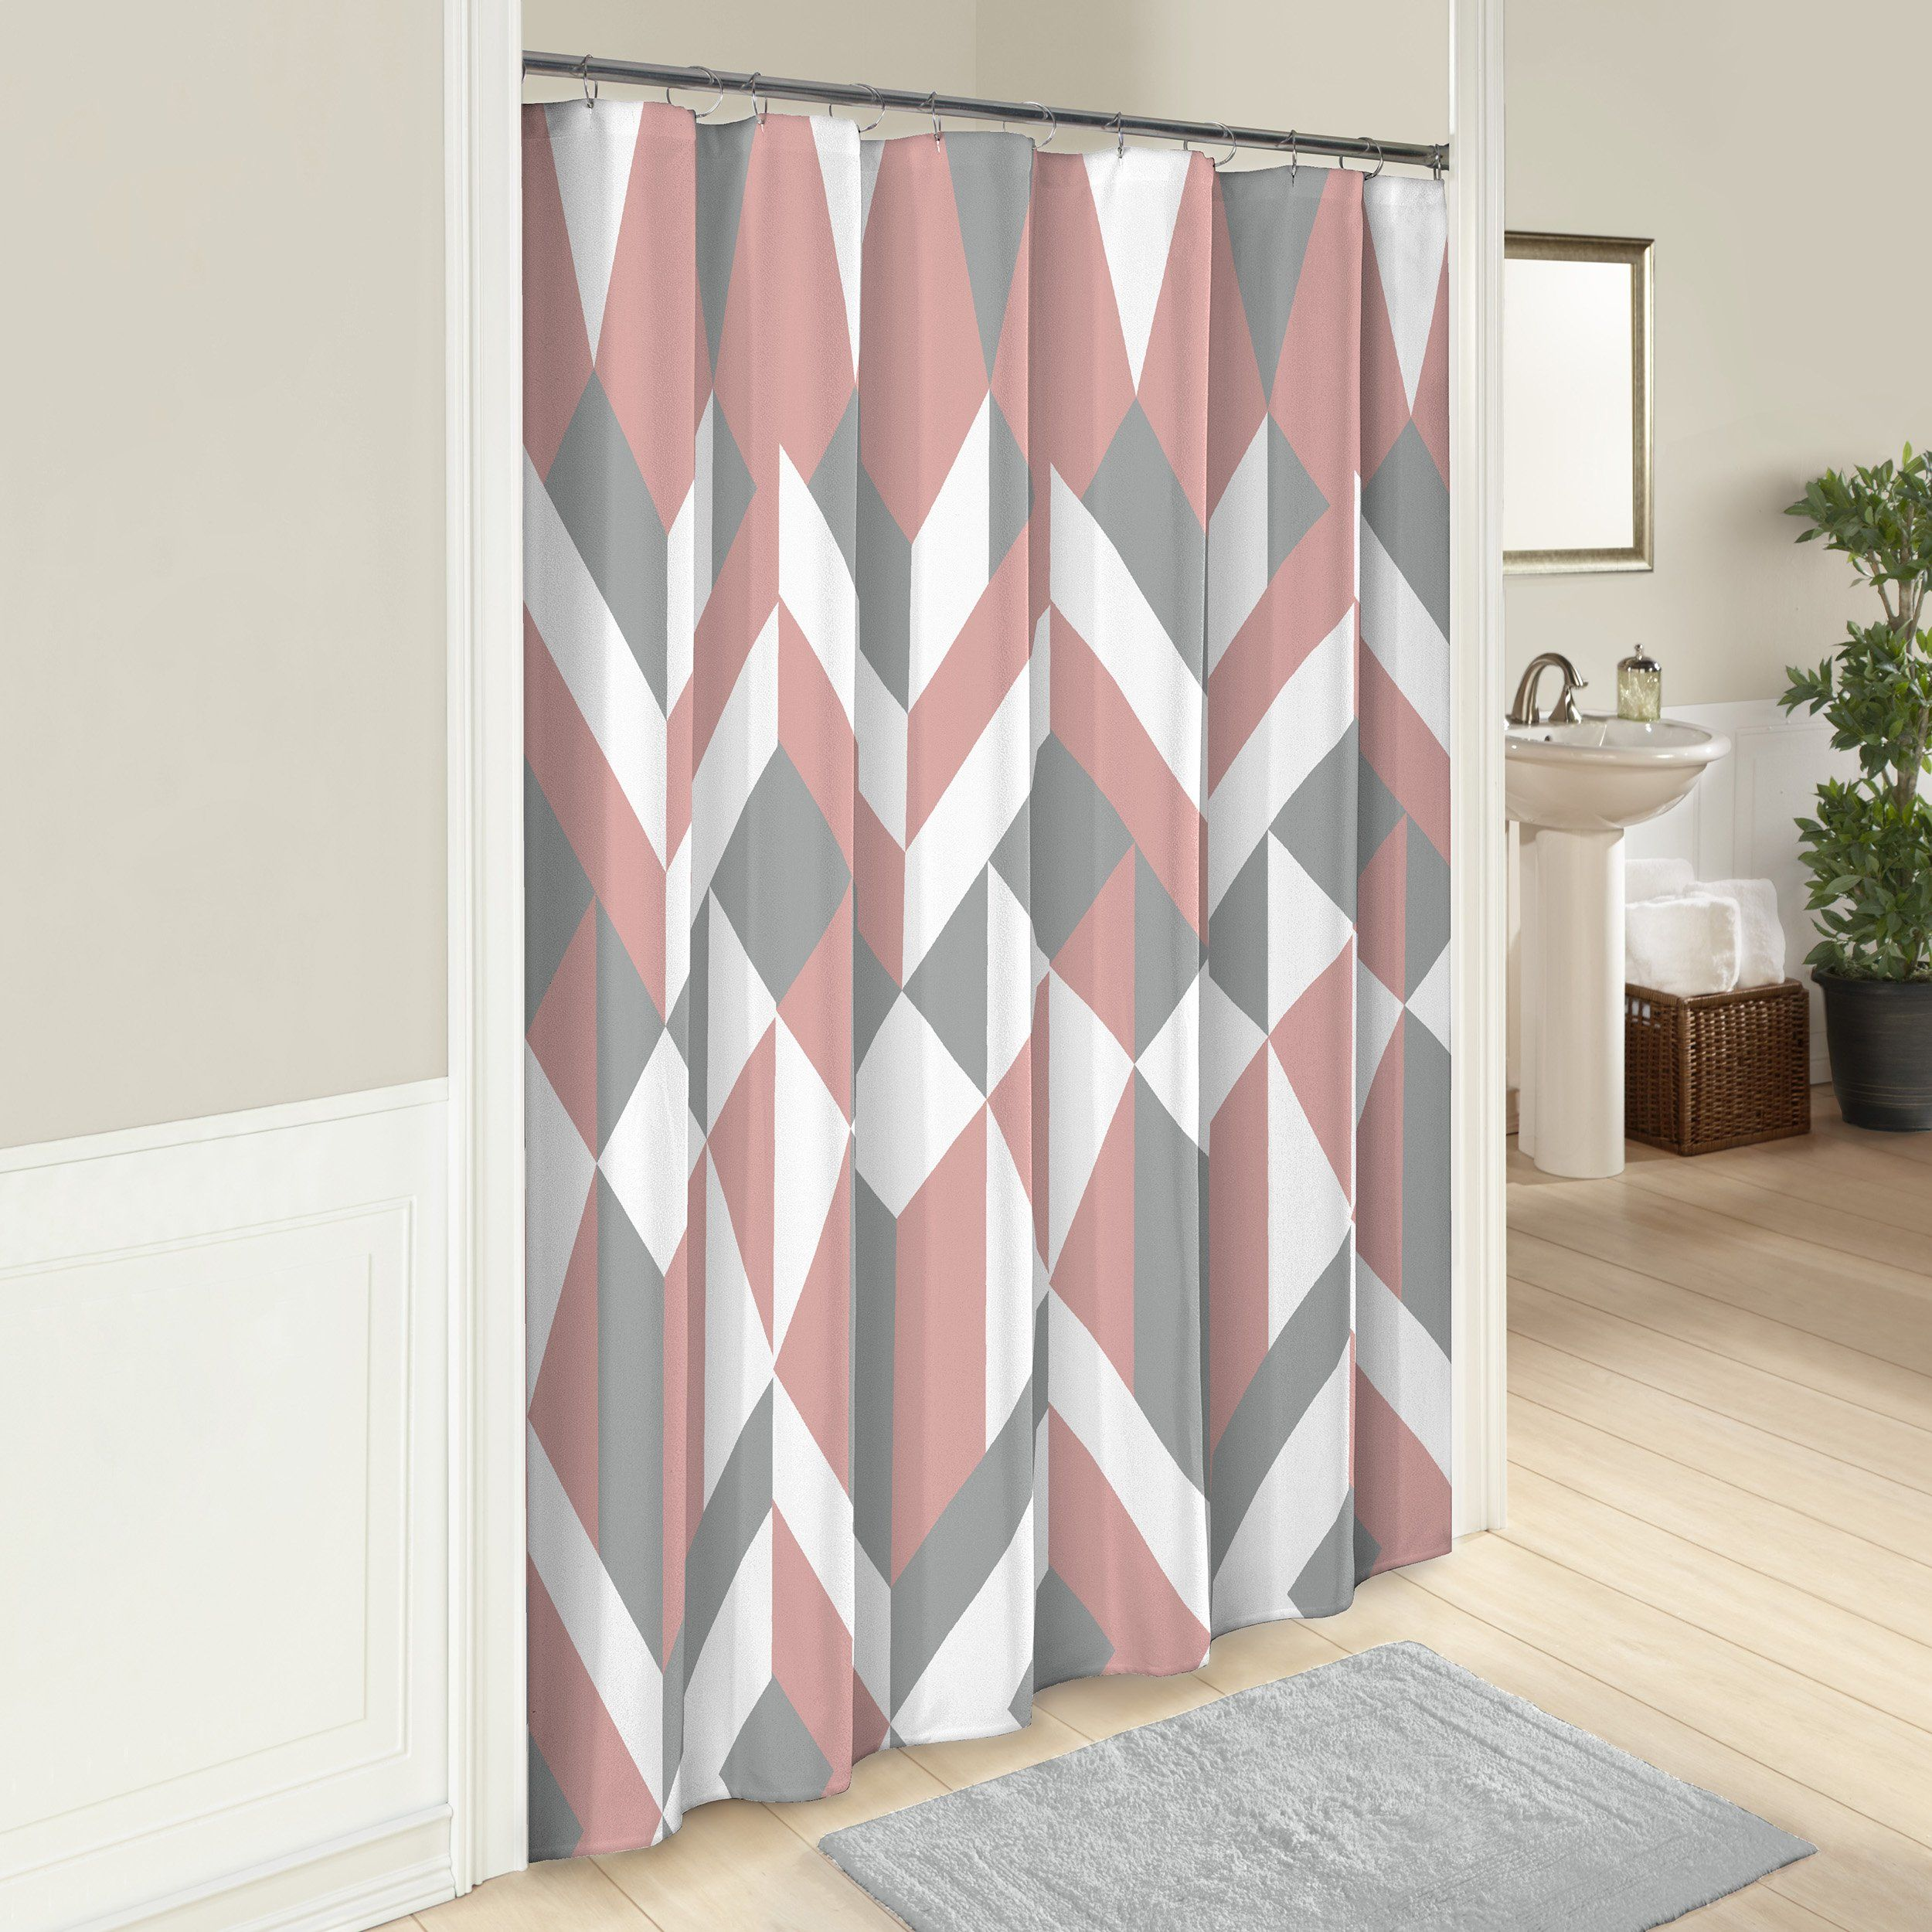 Marble Hill Shower Curtains For Bathroom Lena 72 Quot X 72 Quot